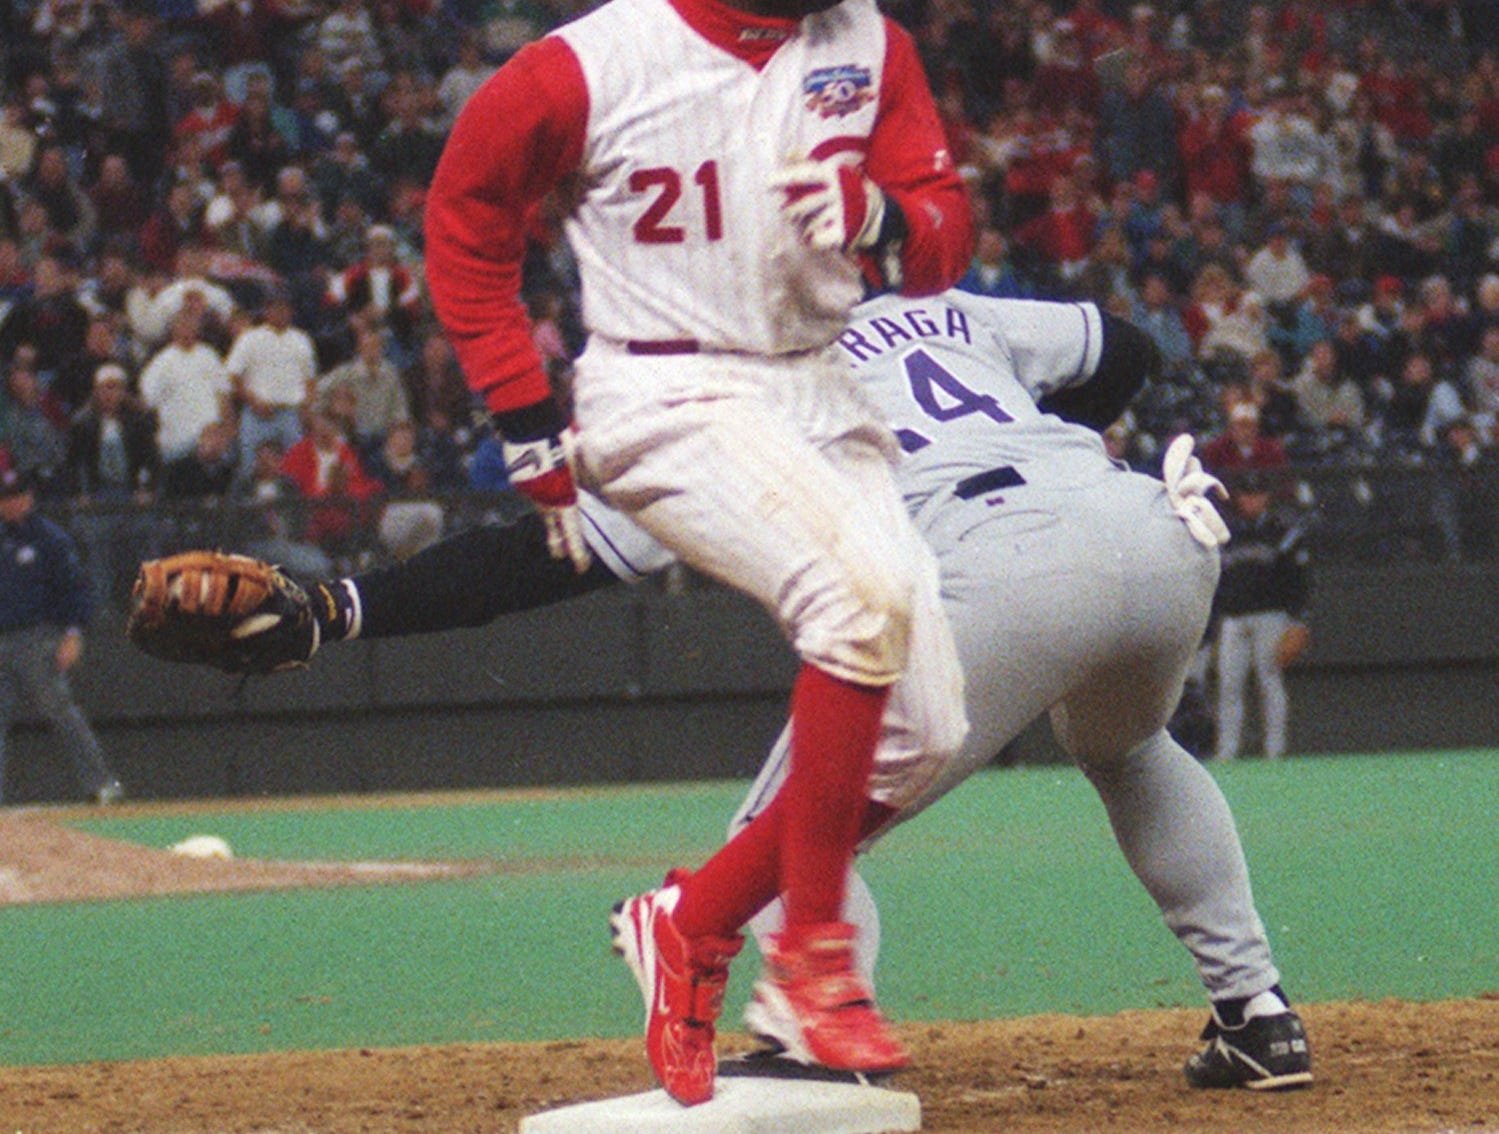 Text: reds- deion--4-2-97-- cincinnati reds deion sanders beats out the throw to first baseman andres galarraga in the 8th inning to pick up deion 4th hit of the night to go 4 for 5 on the night.c-e photo by ernest coleman for sports.